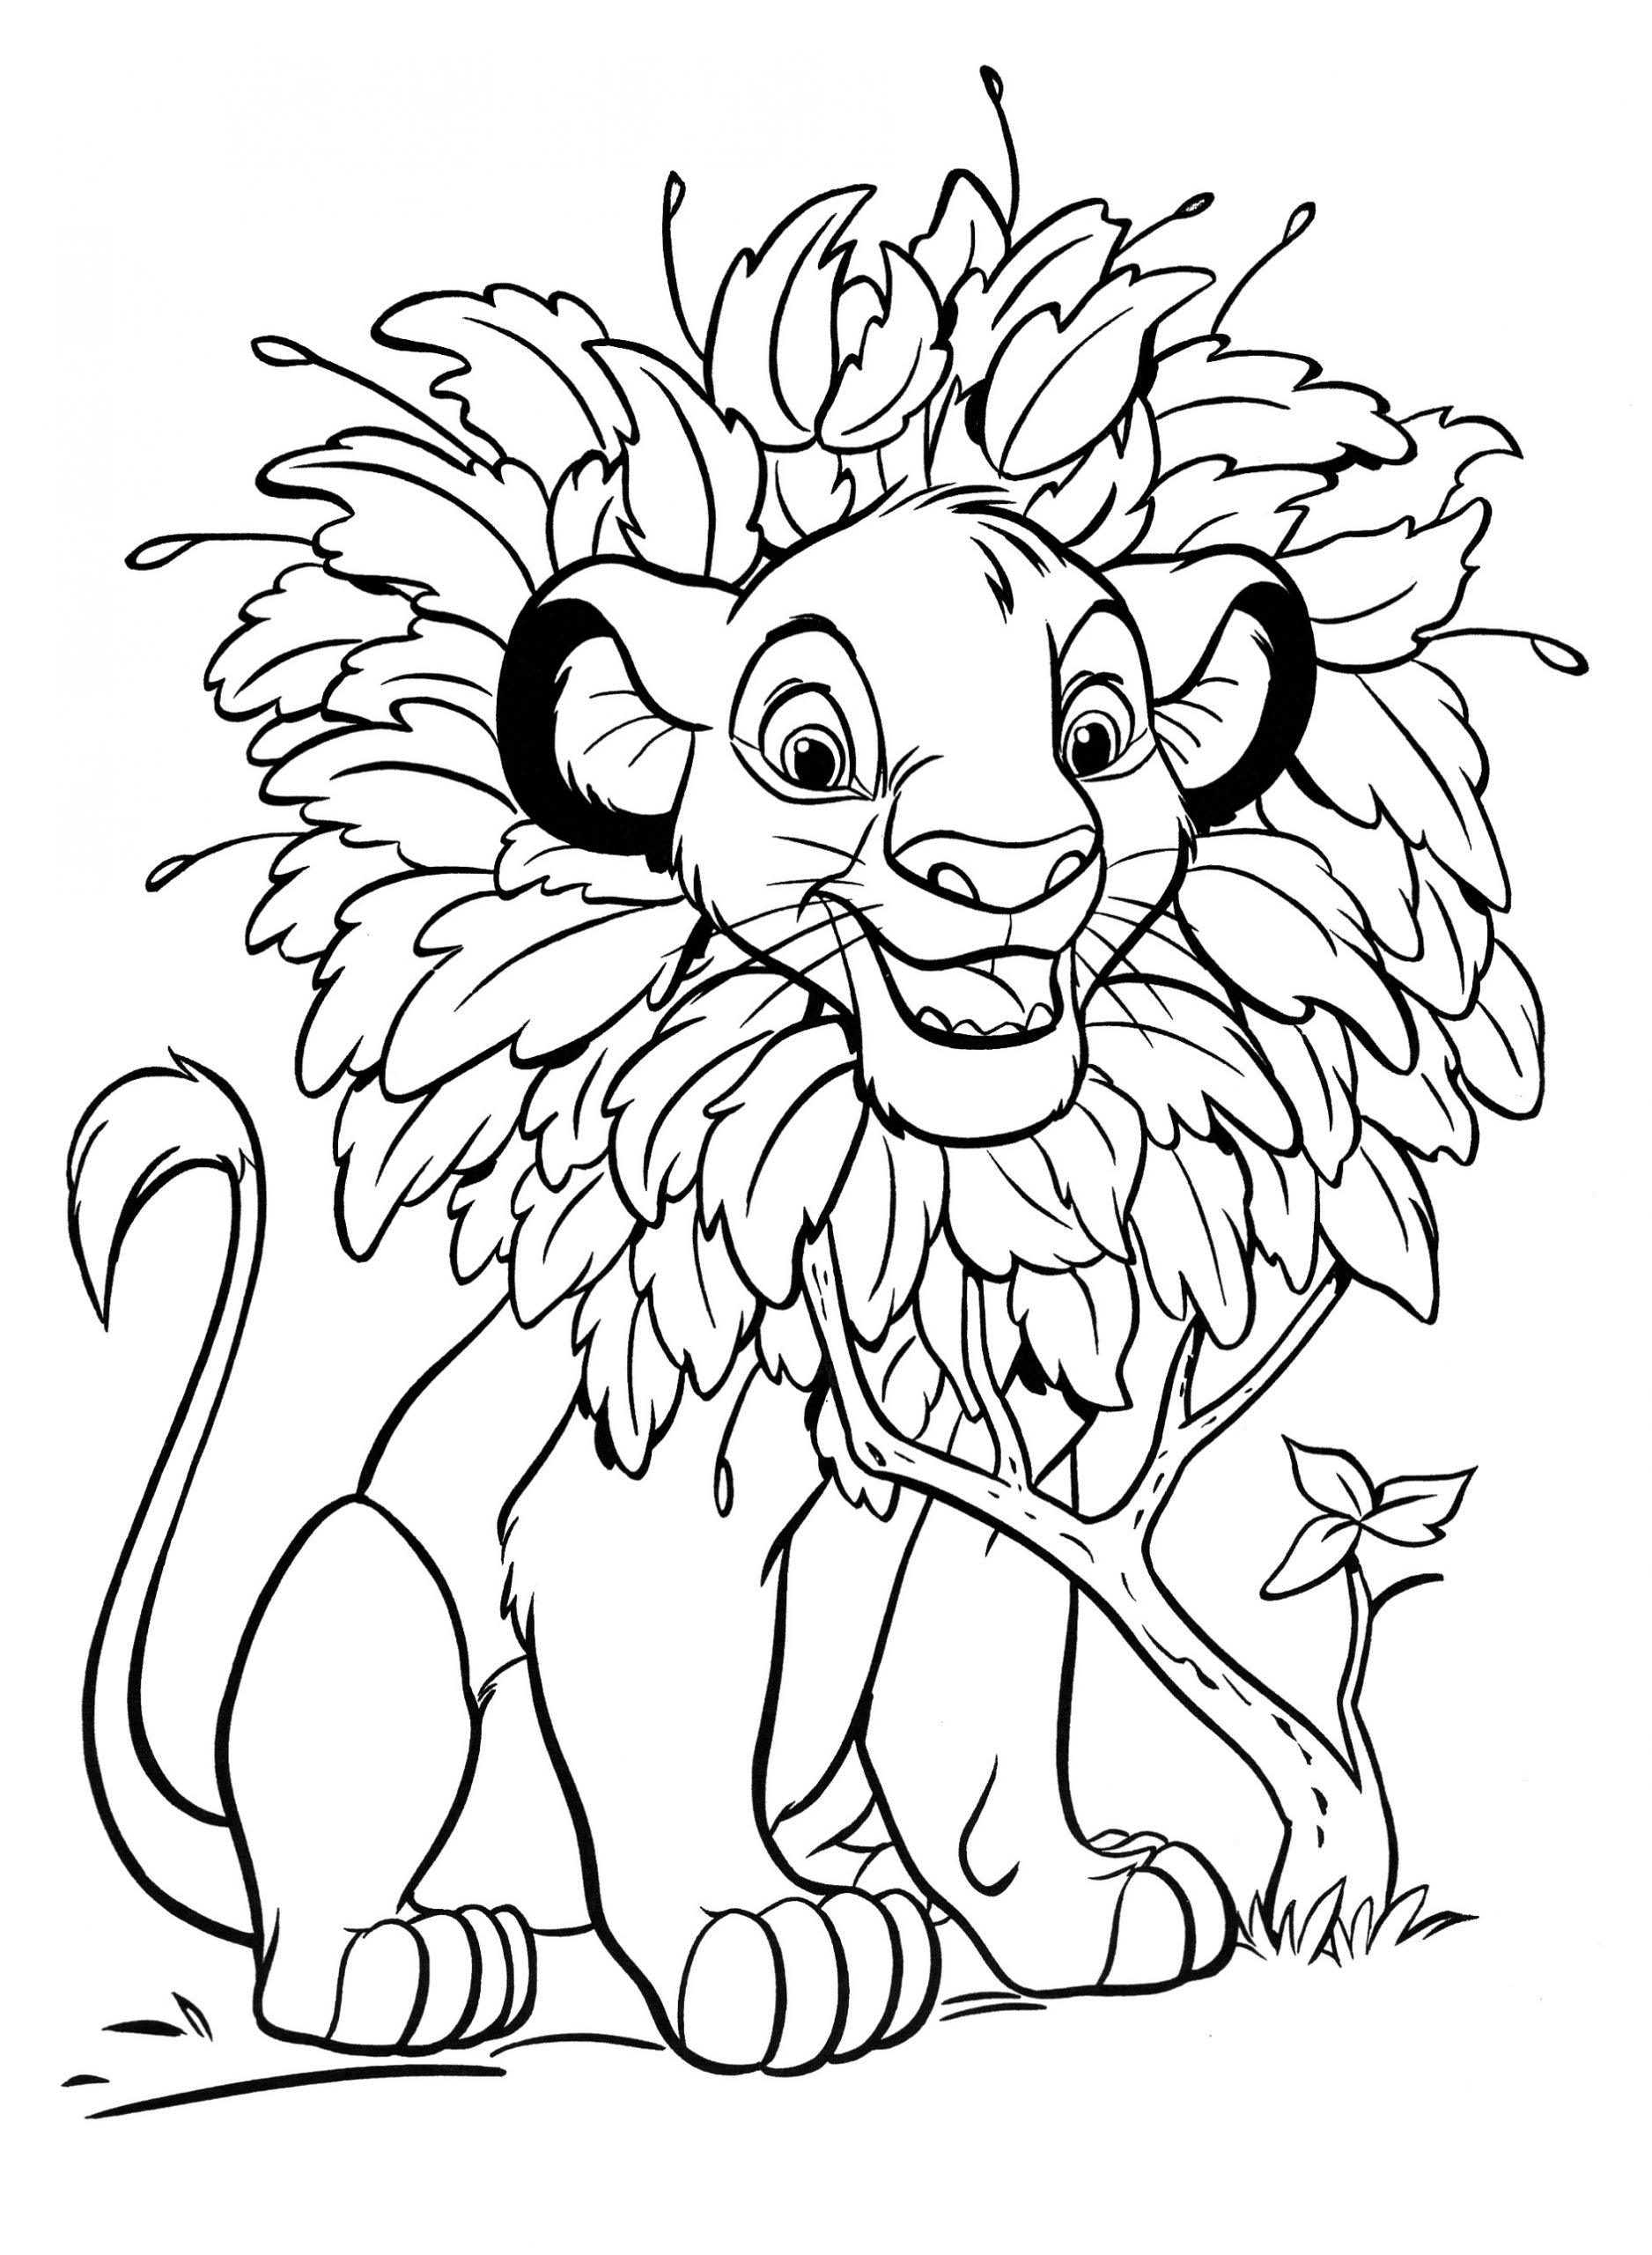 Remarkable disney coloring pages for toddler